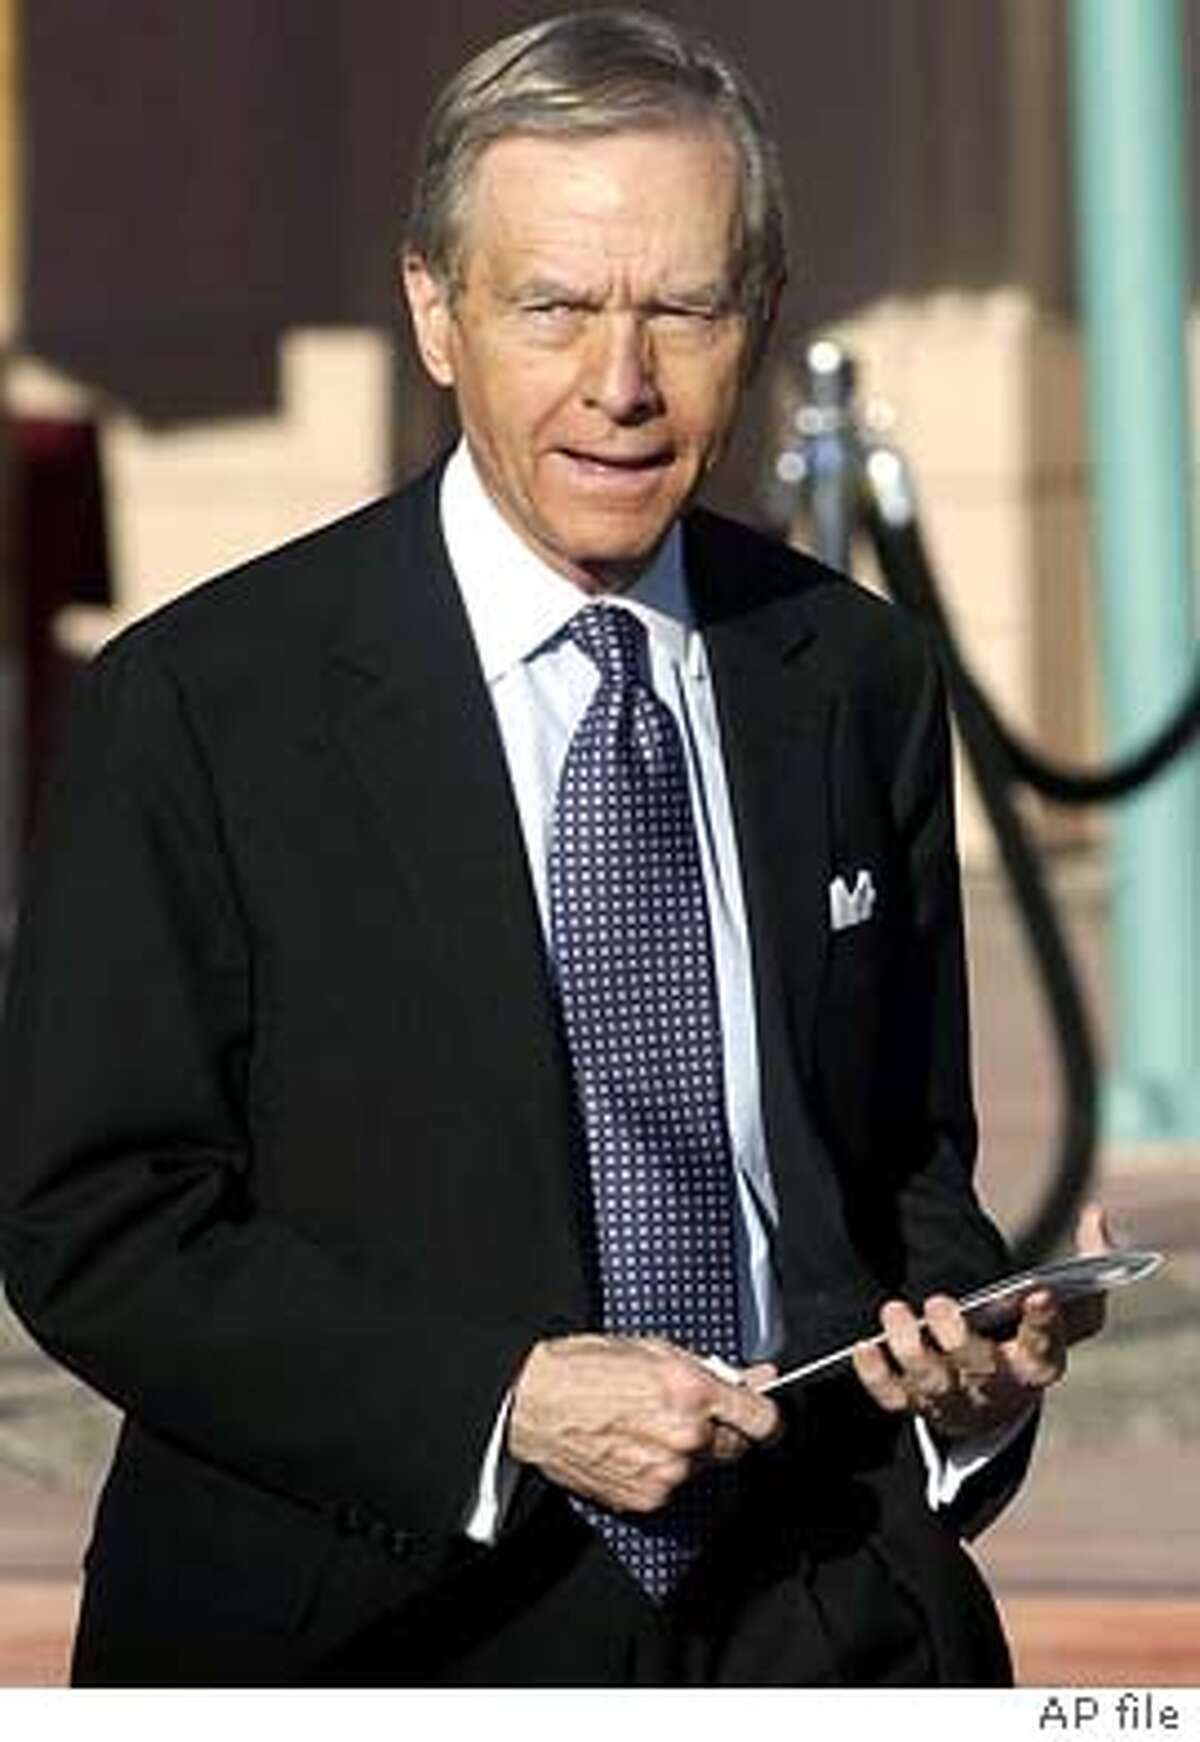 """Former California Governor Pete Wilson leaves """"The Bob Hope Memorial Tribute"""" at the Academy of Television Arts and Sciences Wednesday, Aug. 27, 2003 in the North Hollywood section of Los Angeles. (AP Photo/Matt Sayles)"""